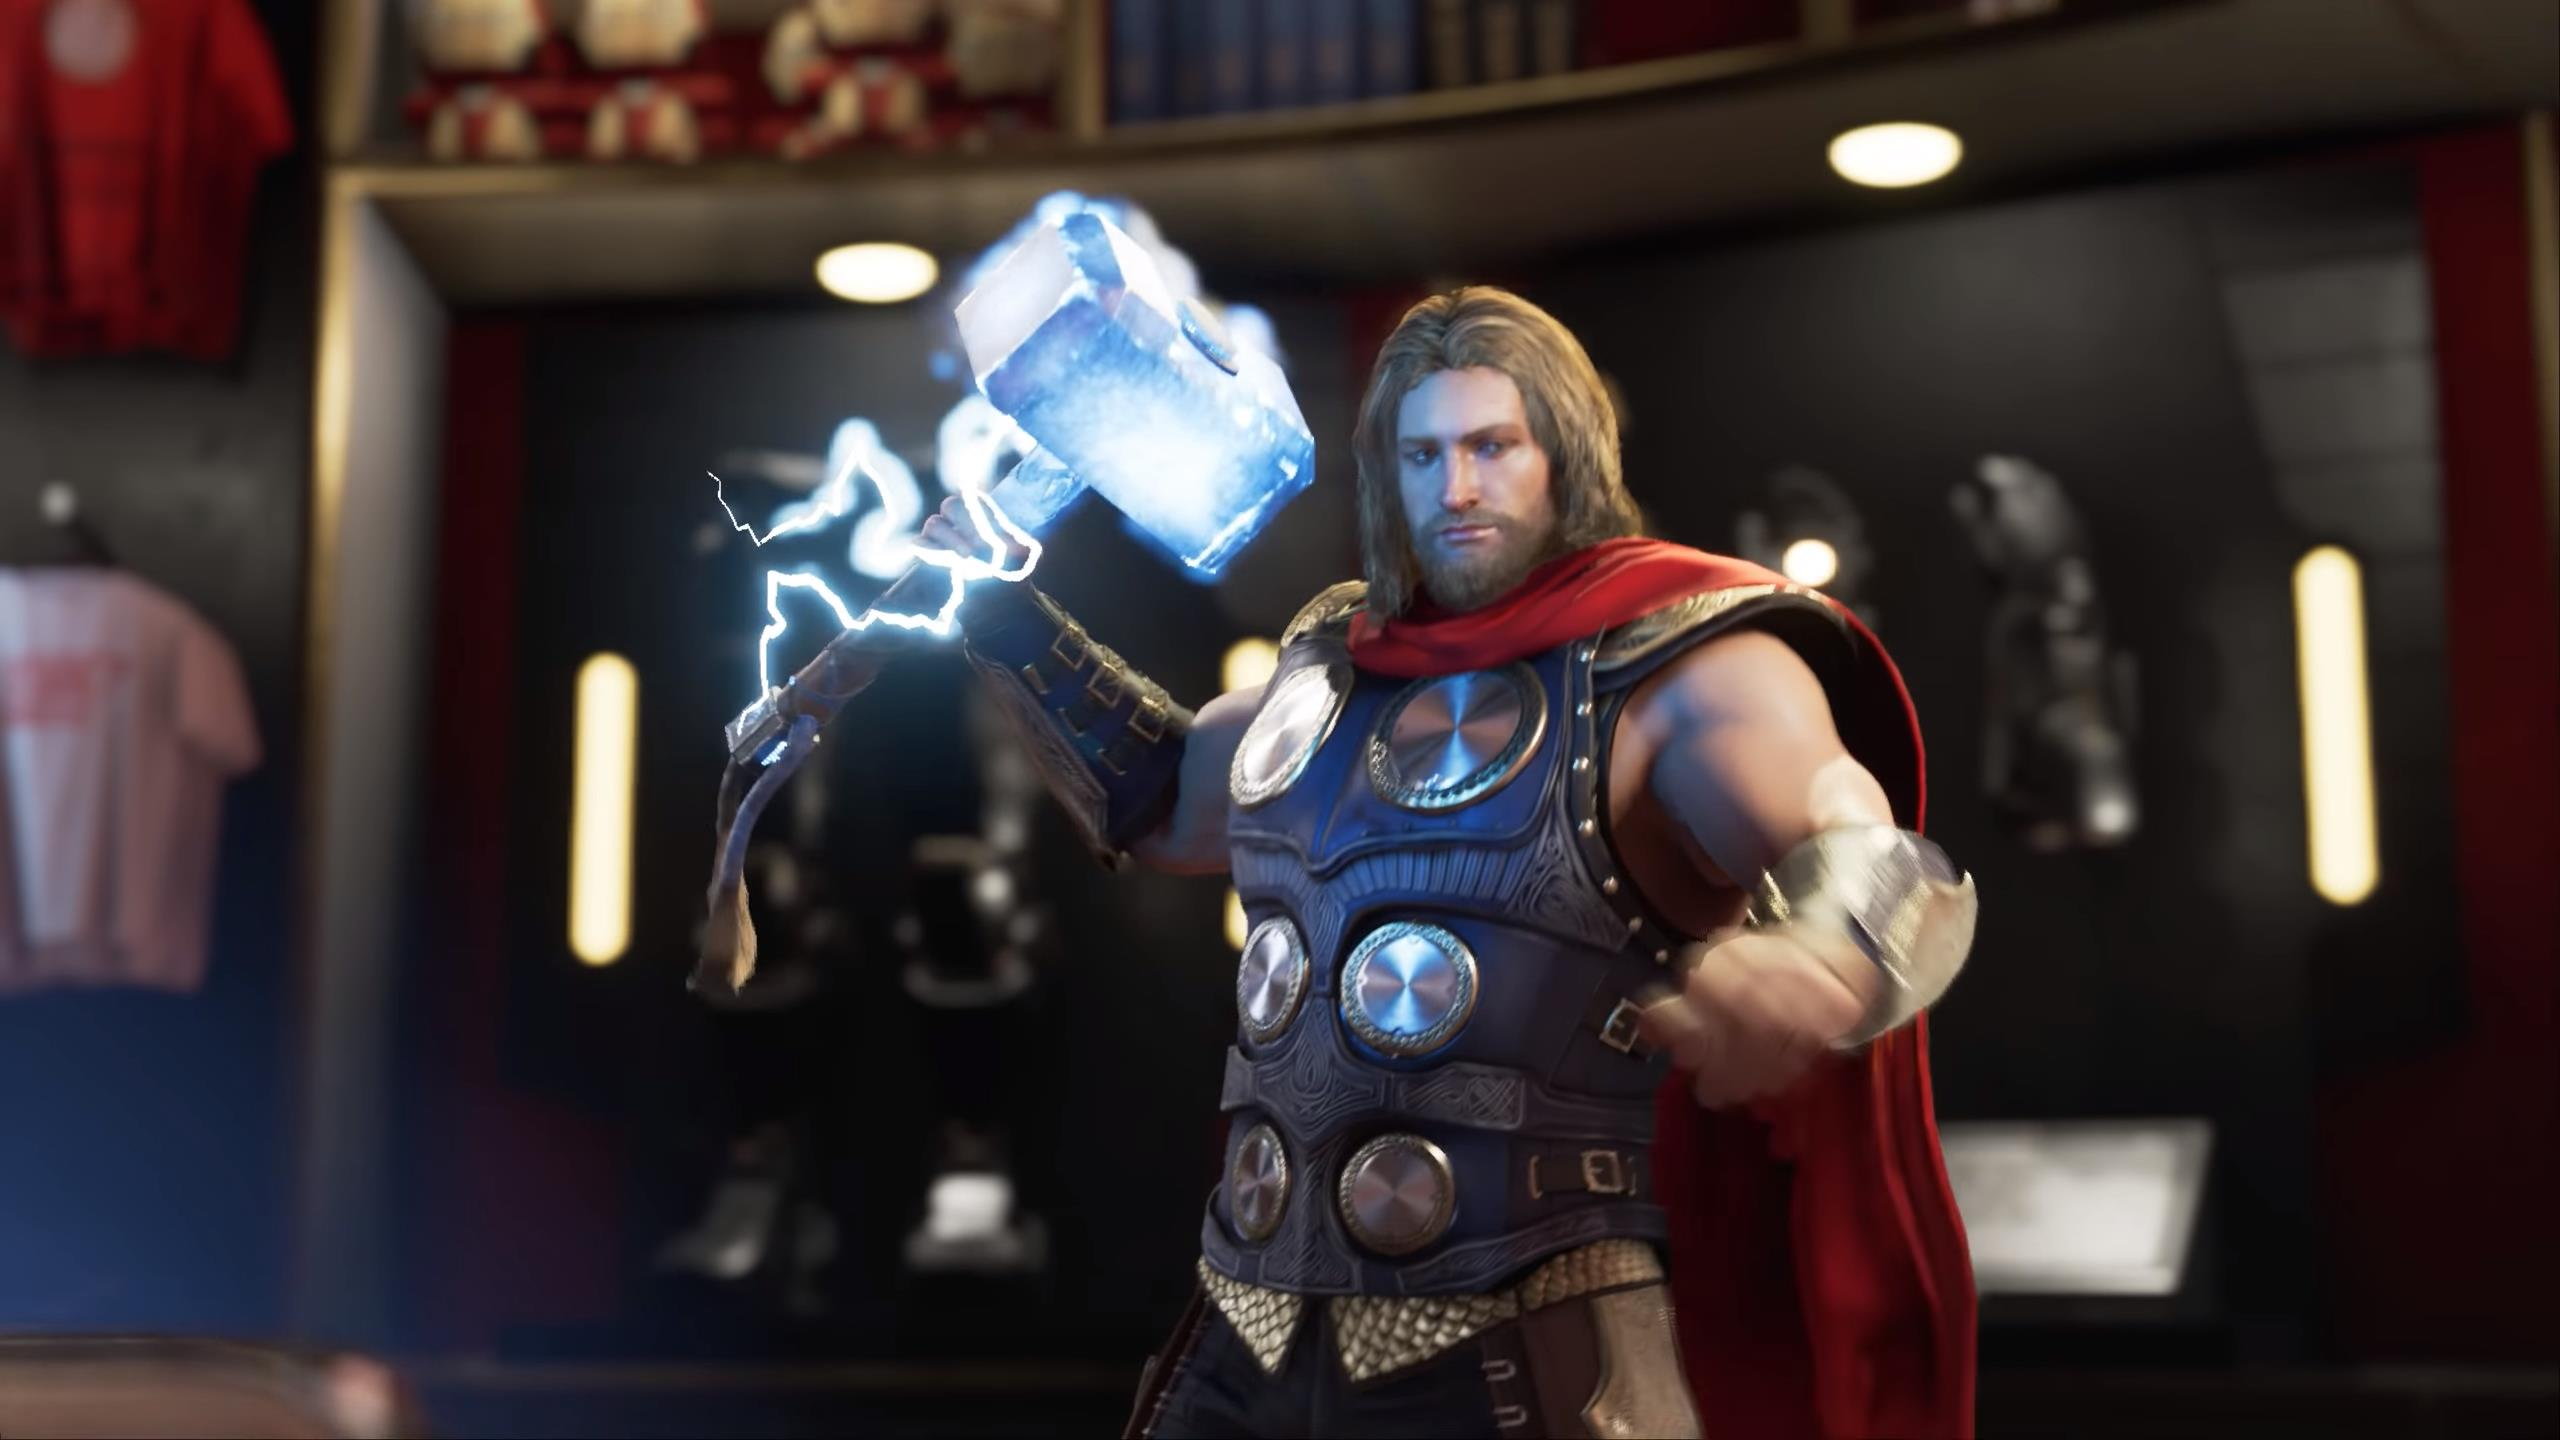 Square Enix teases fans with new 'Marvel Avengers' game official trailer